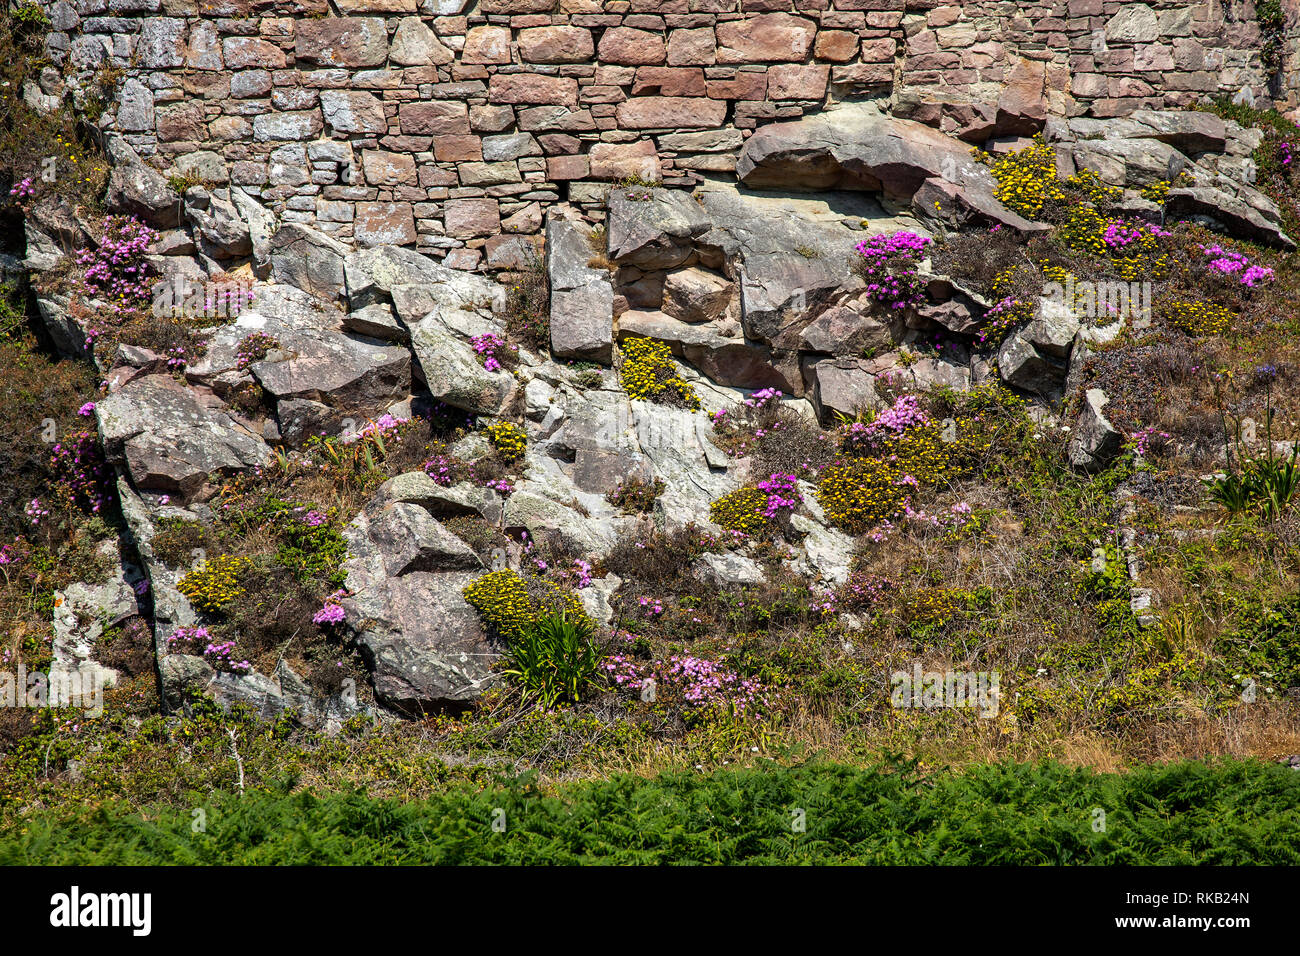 Natural flora growing on rocks near to the coast on Alderney - Stock Image